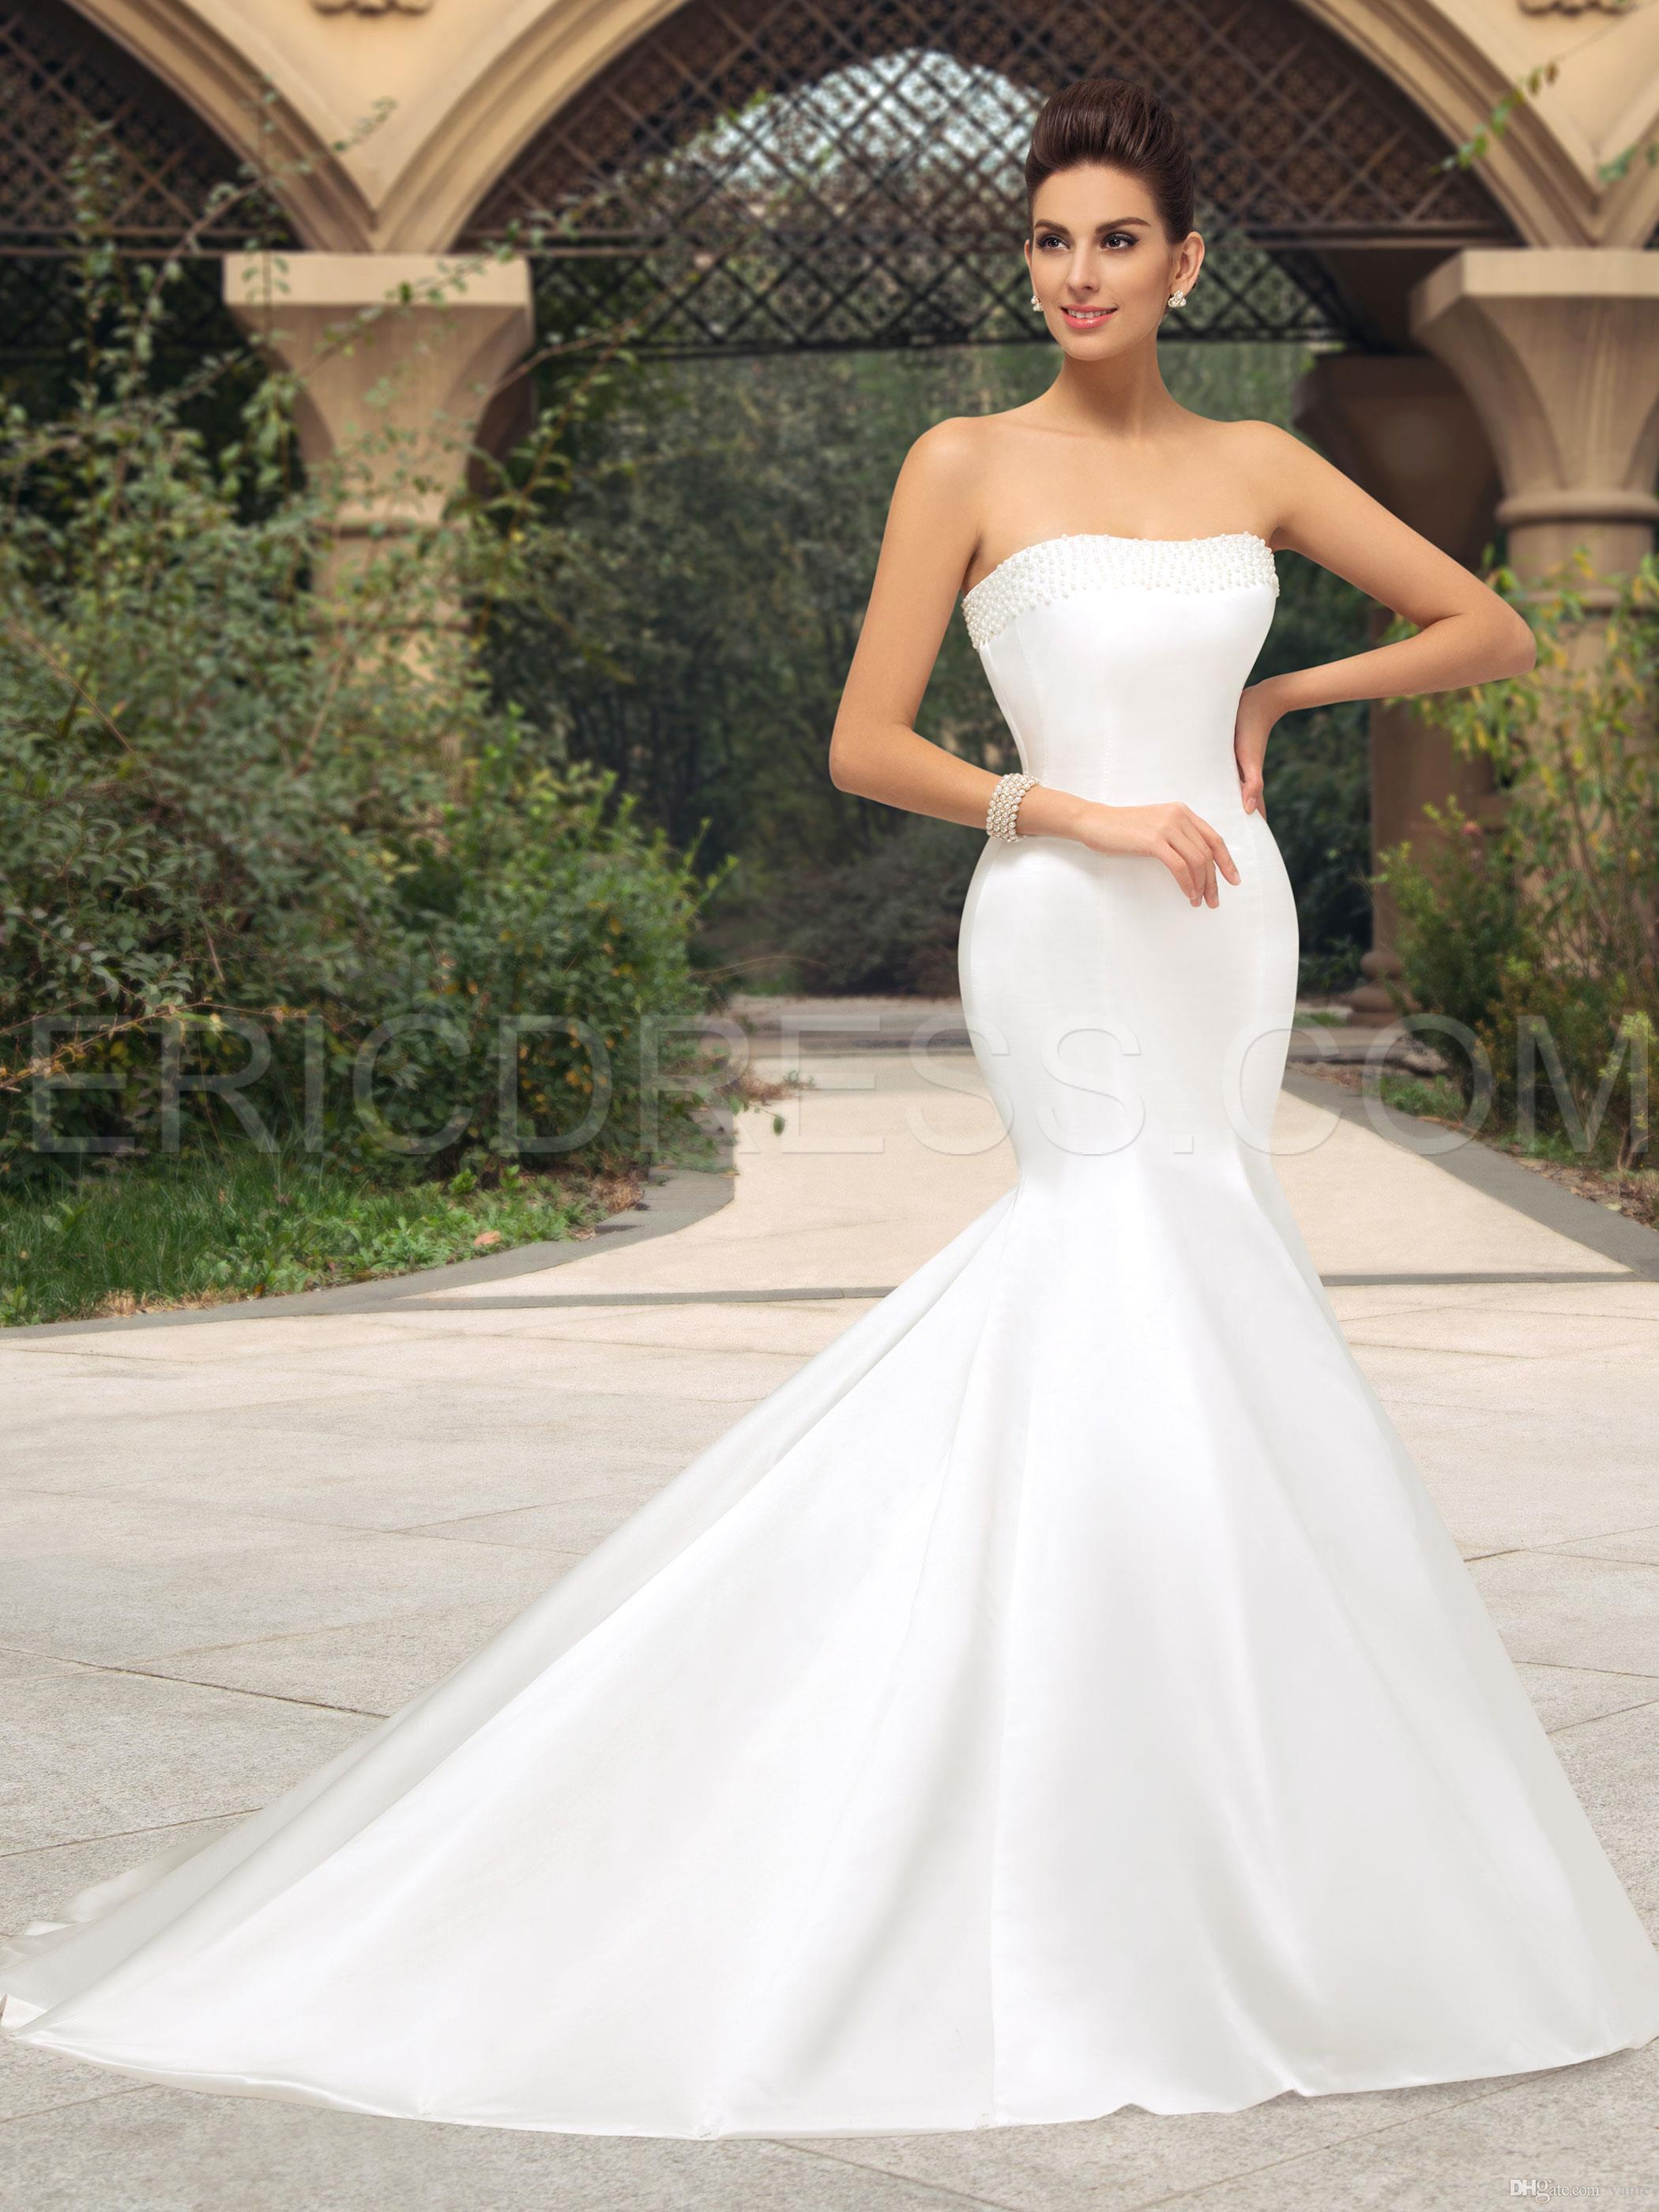 Nwd27 2017 Fashionable Of Bride Simple Satin Mermaid Wedding Dress ...